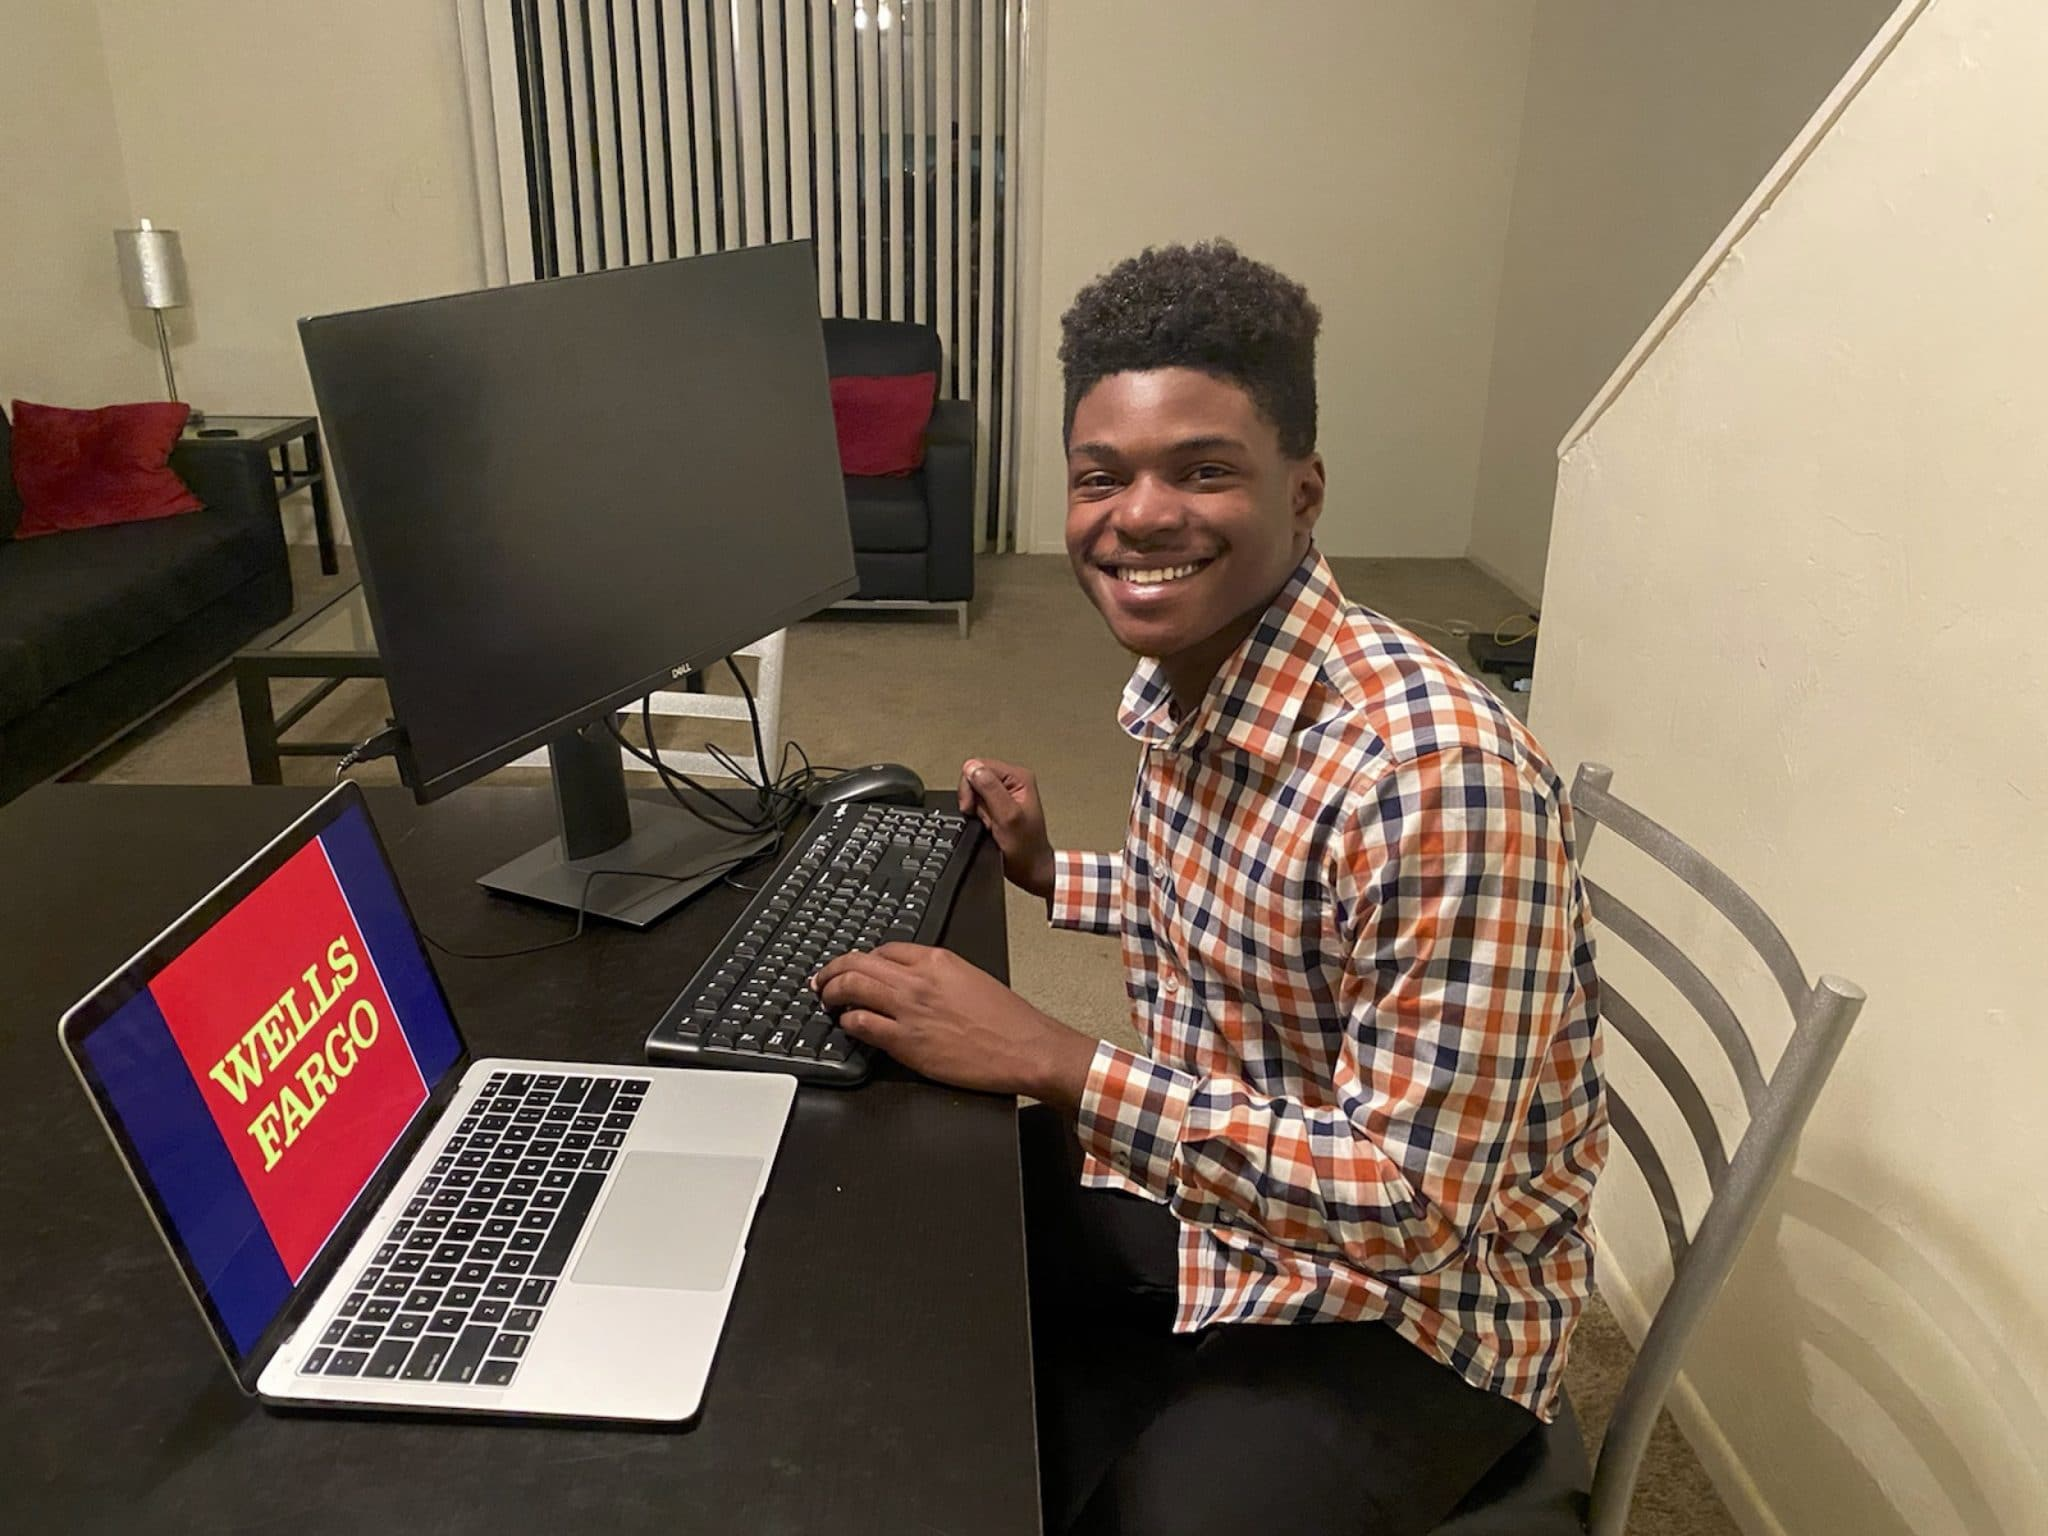 Dwayne Thewell poses for a photo at his home work set up with a laptop and computer monitor with the Wells Fargo logo